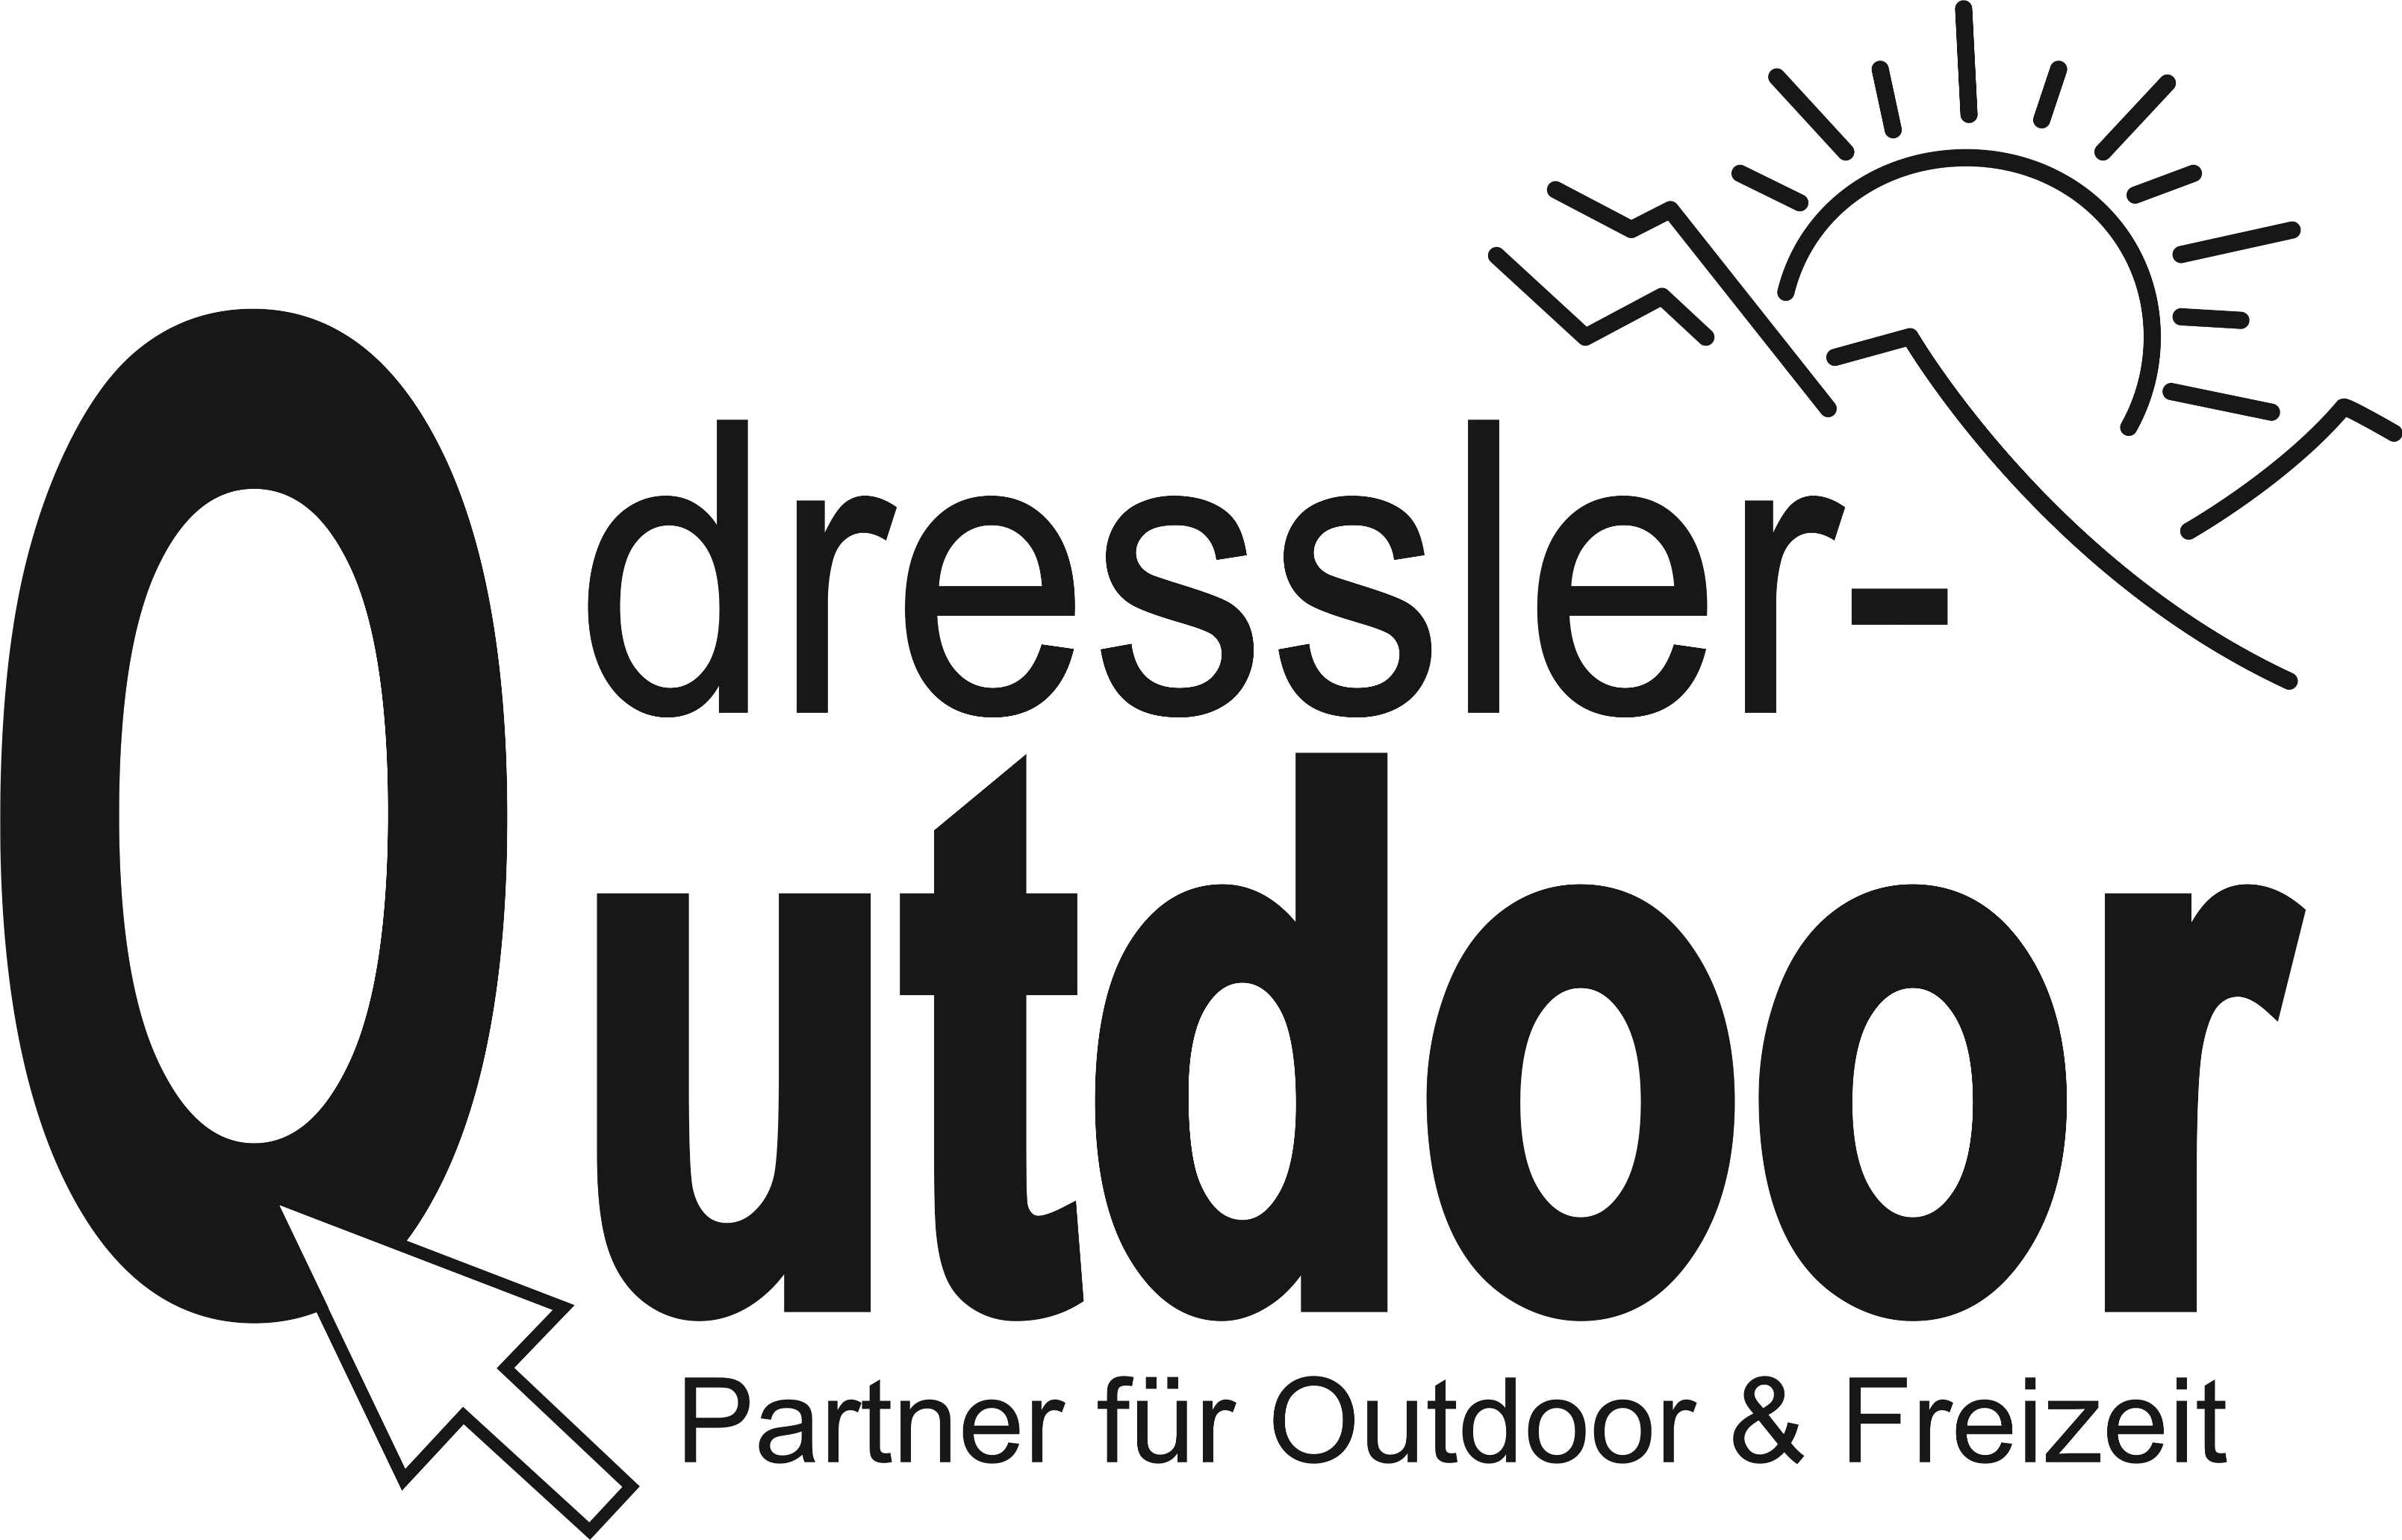 Dressler-Outdoor Onlineshop